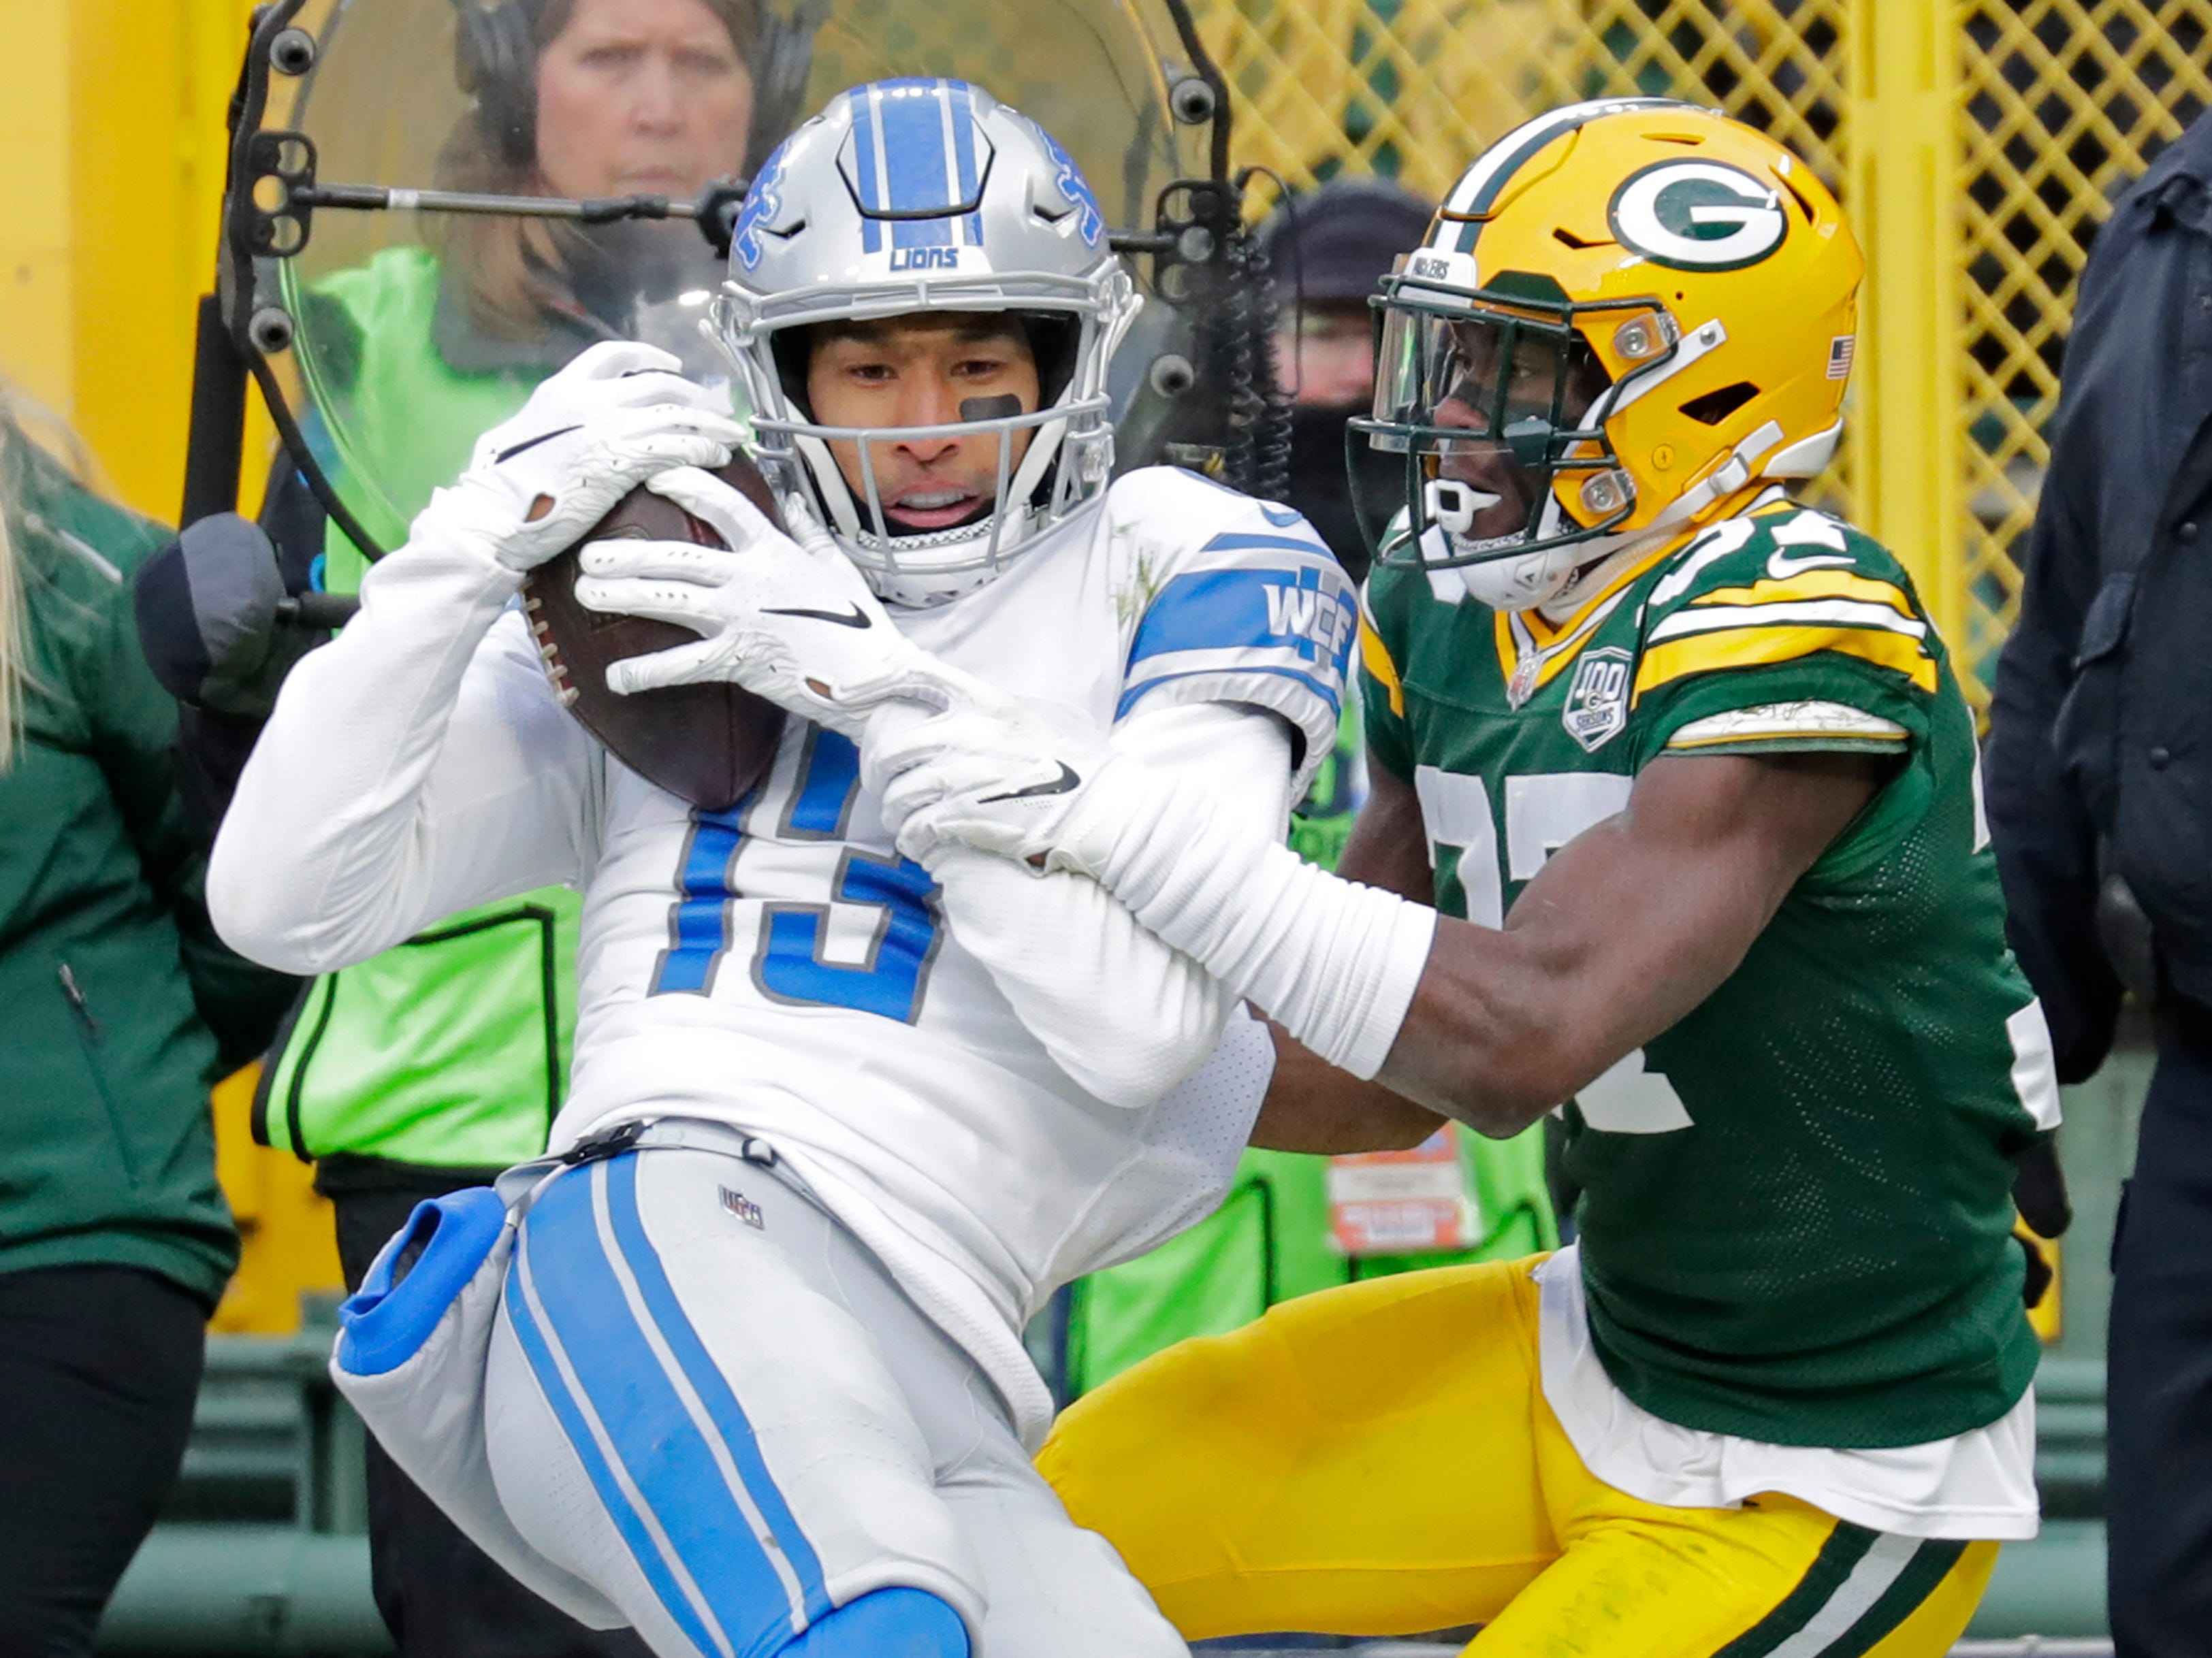 Detroit Lions wide receiver T.J. Jones (13) pulls down a touchdown against Green Bay Packers cornerback Josh Jackson (37) in the fourth quarter Sunday, December 30, 2018, at Lambeau Field in Green Bay, Wis. 